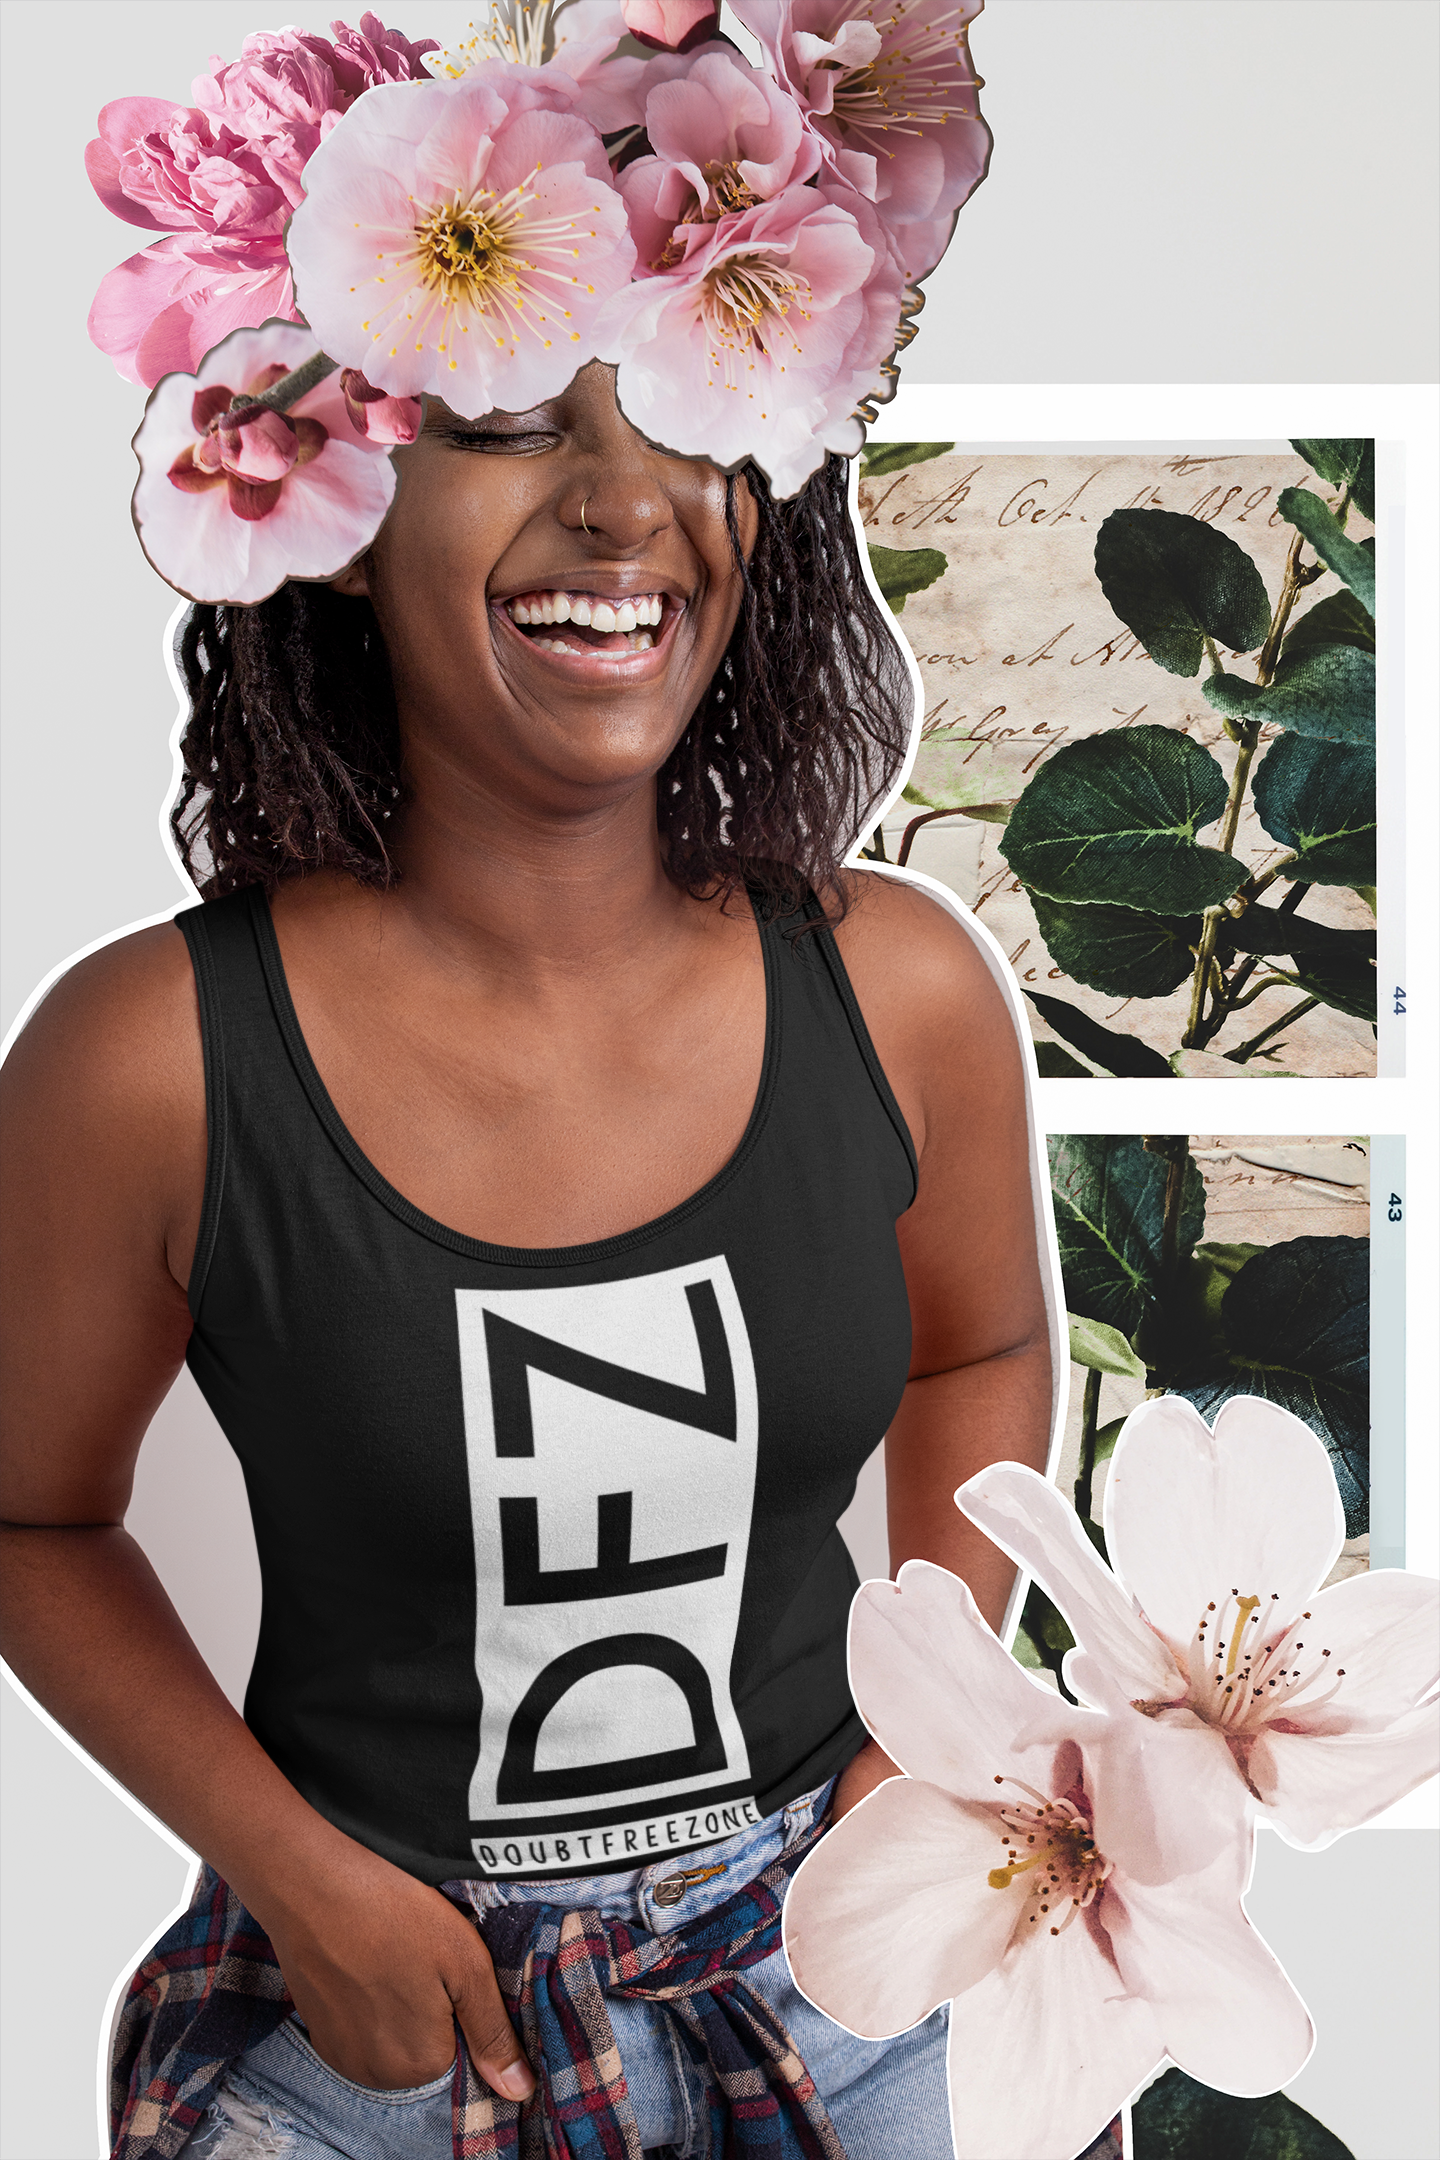 mockup-of-a-woman-wearing-a-tank-top-fea